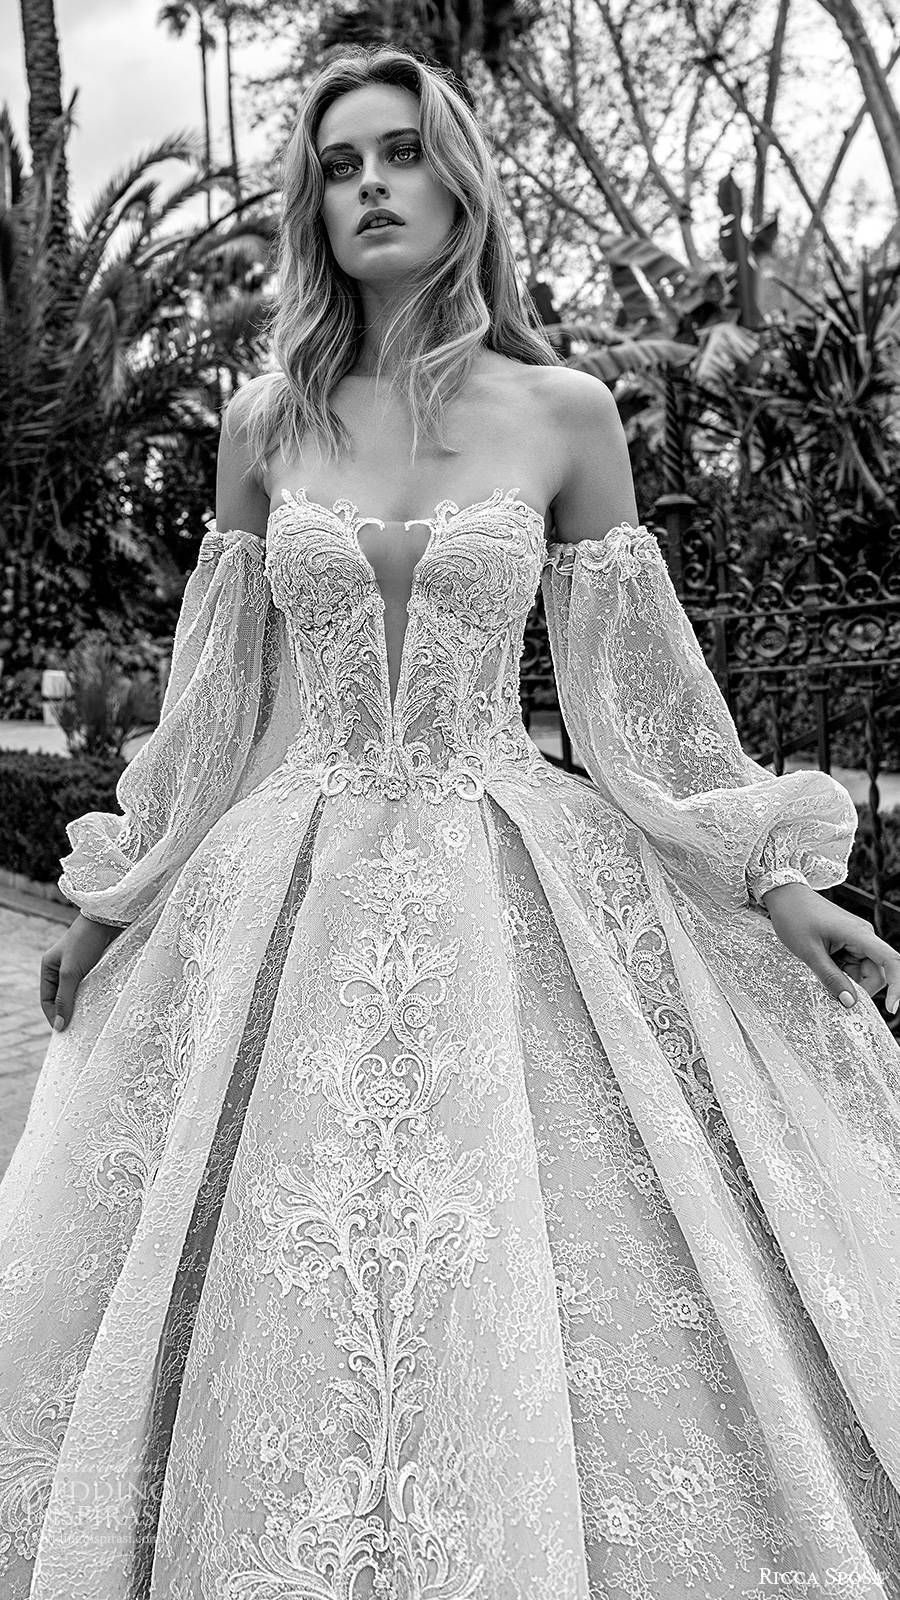 Ricca Sposa 2020 Wedding Dresses Dell Amor Couture Bridal Collection Wedding Inspirasi Fairy Tale Wedding Dress Ball Gown Wedding Dress Ball Gowns